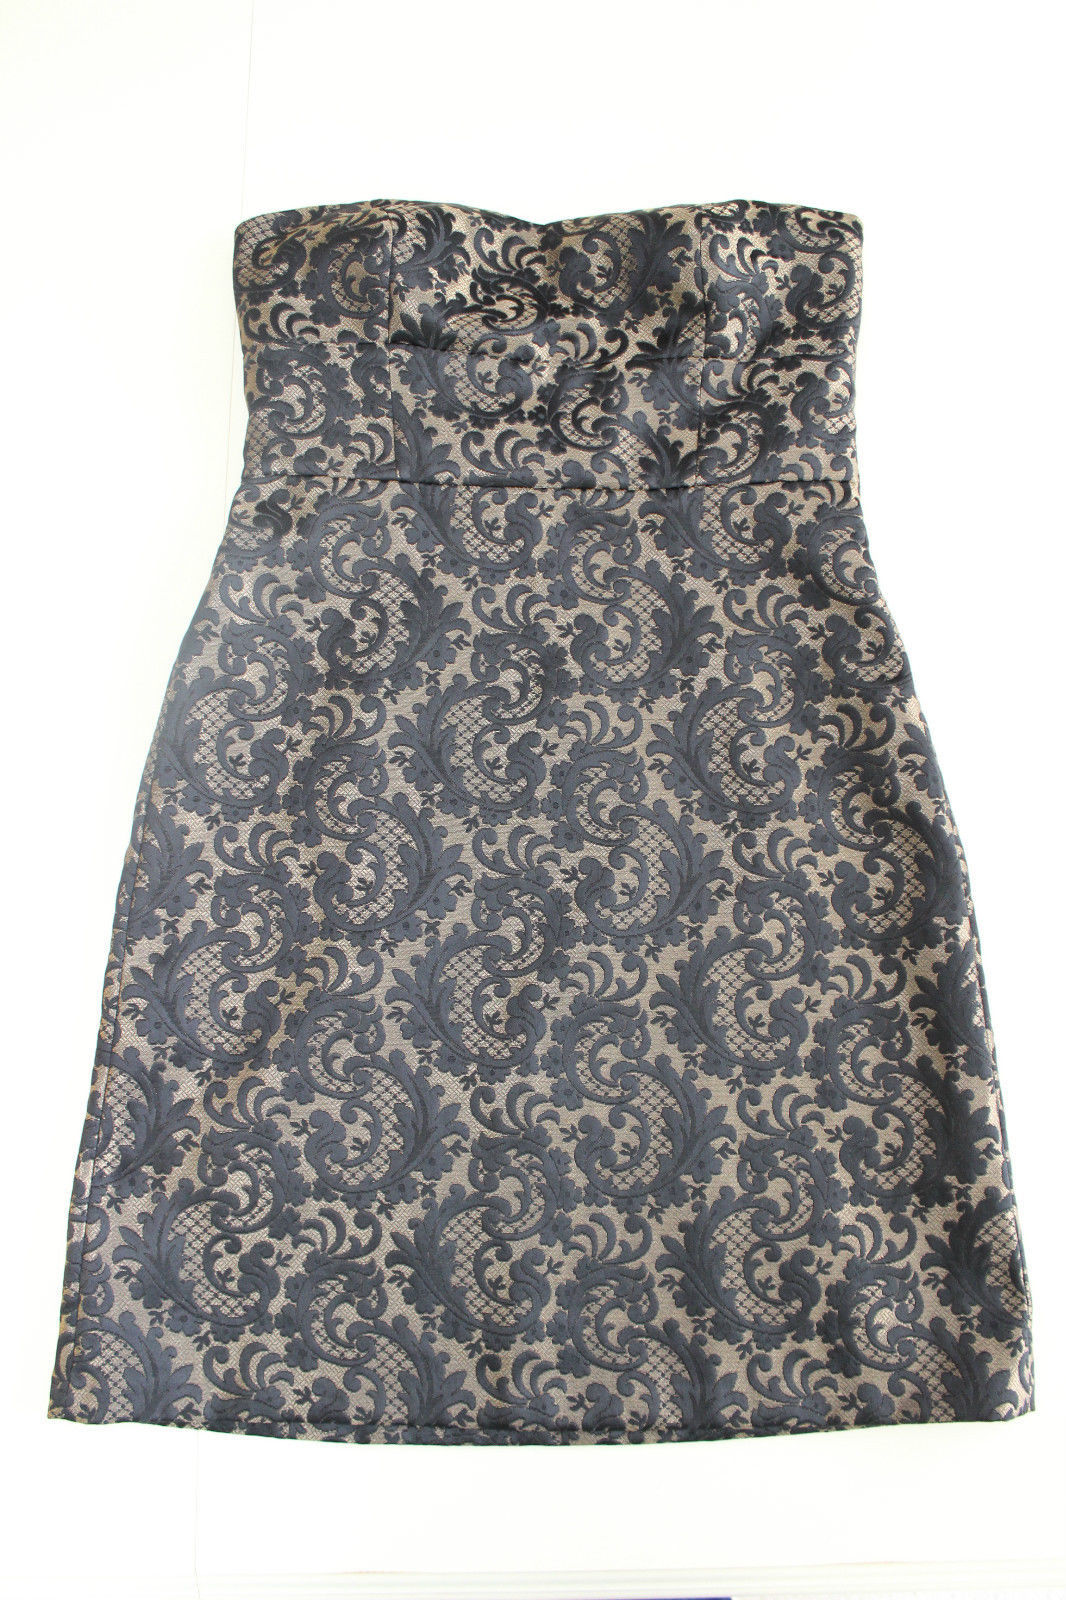 Ann Taylor Loft Black & Gold/Tan Jacquard Sheath Strapless Dress Size 10 Lined